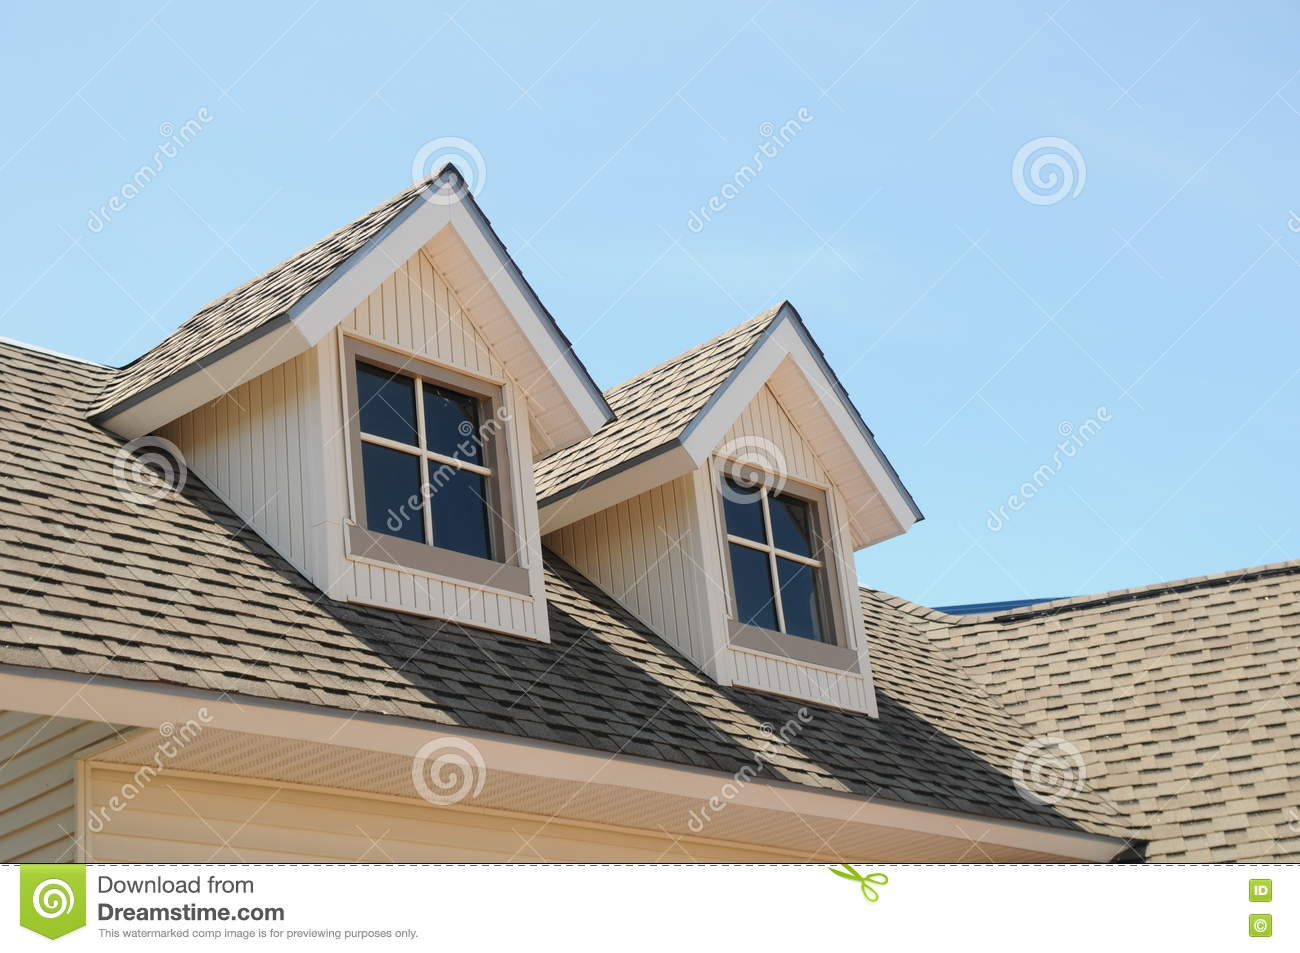 Amazing Royalty Free Stock Photo. Download Victorian Style Roof Dormers ...